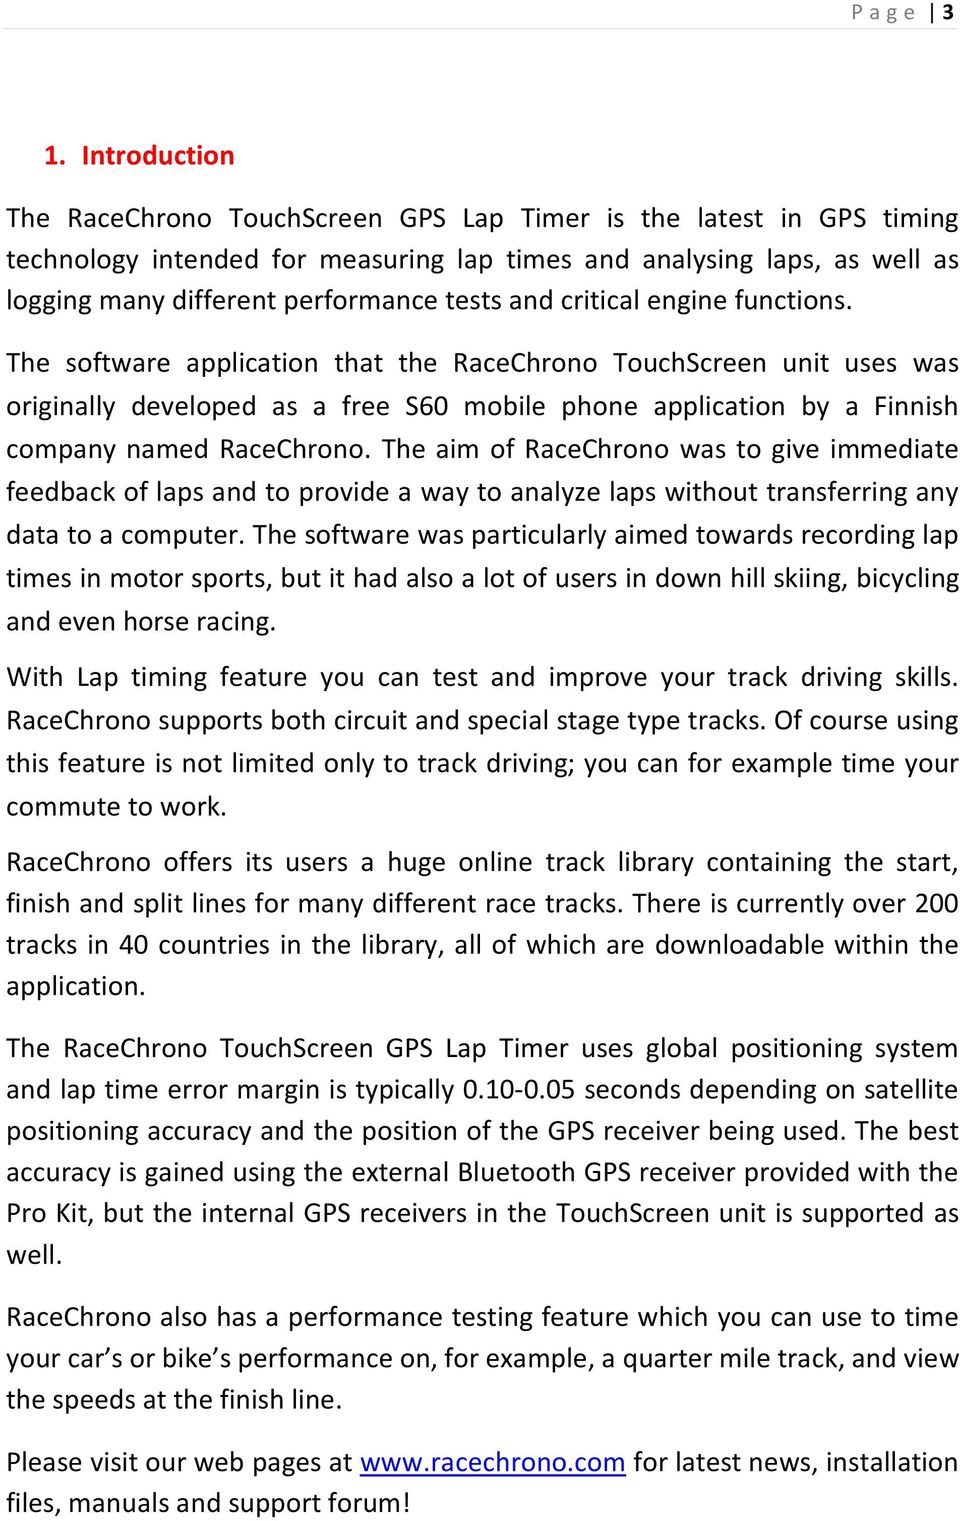 and critical engine functions. The software application that the RaceChrono TouchScreen unit uses was originally developed as a free S60 mobile phone application by a Finnish company named RaceChrono.